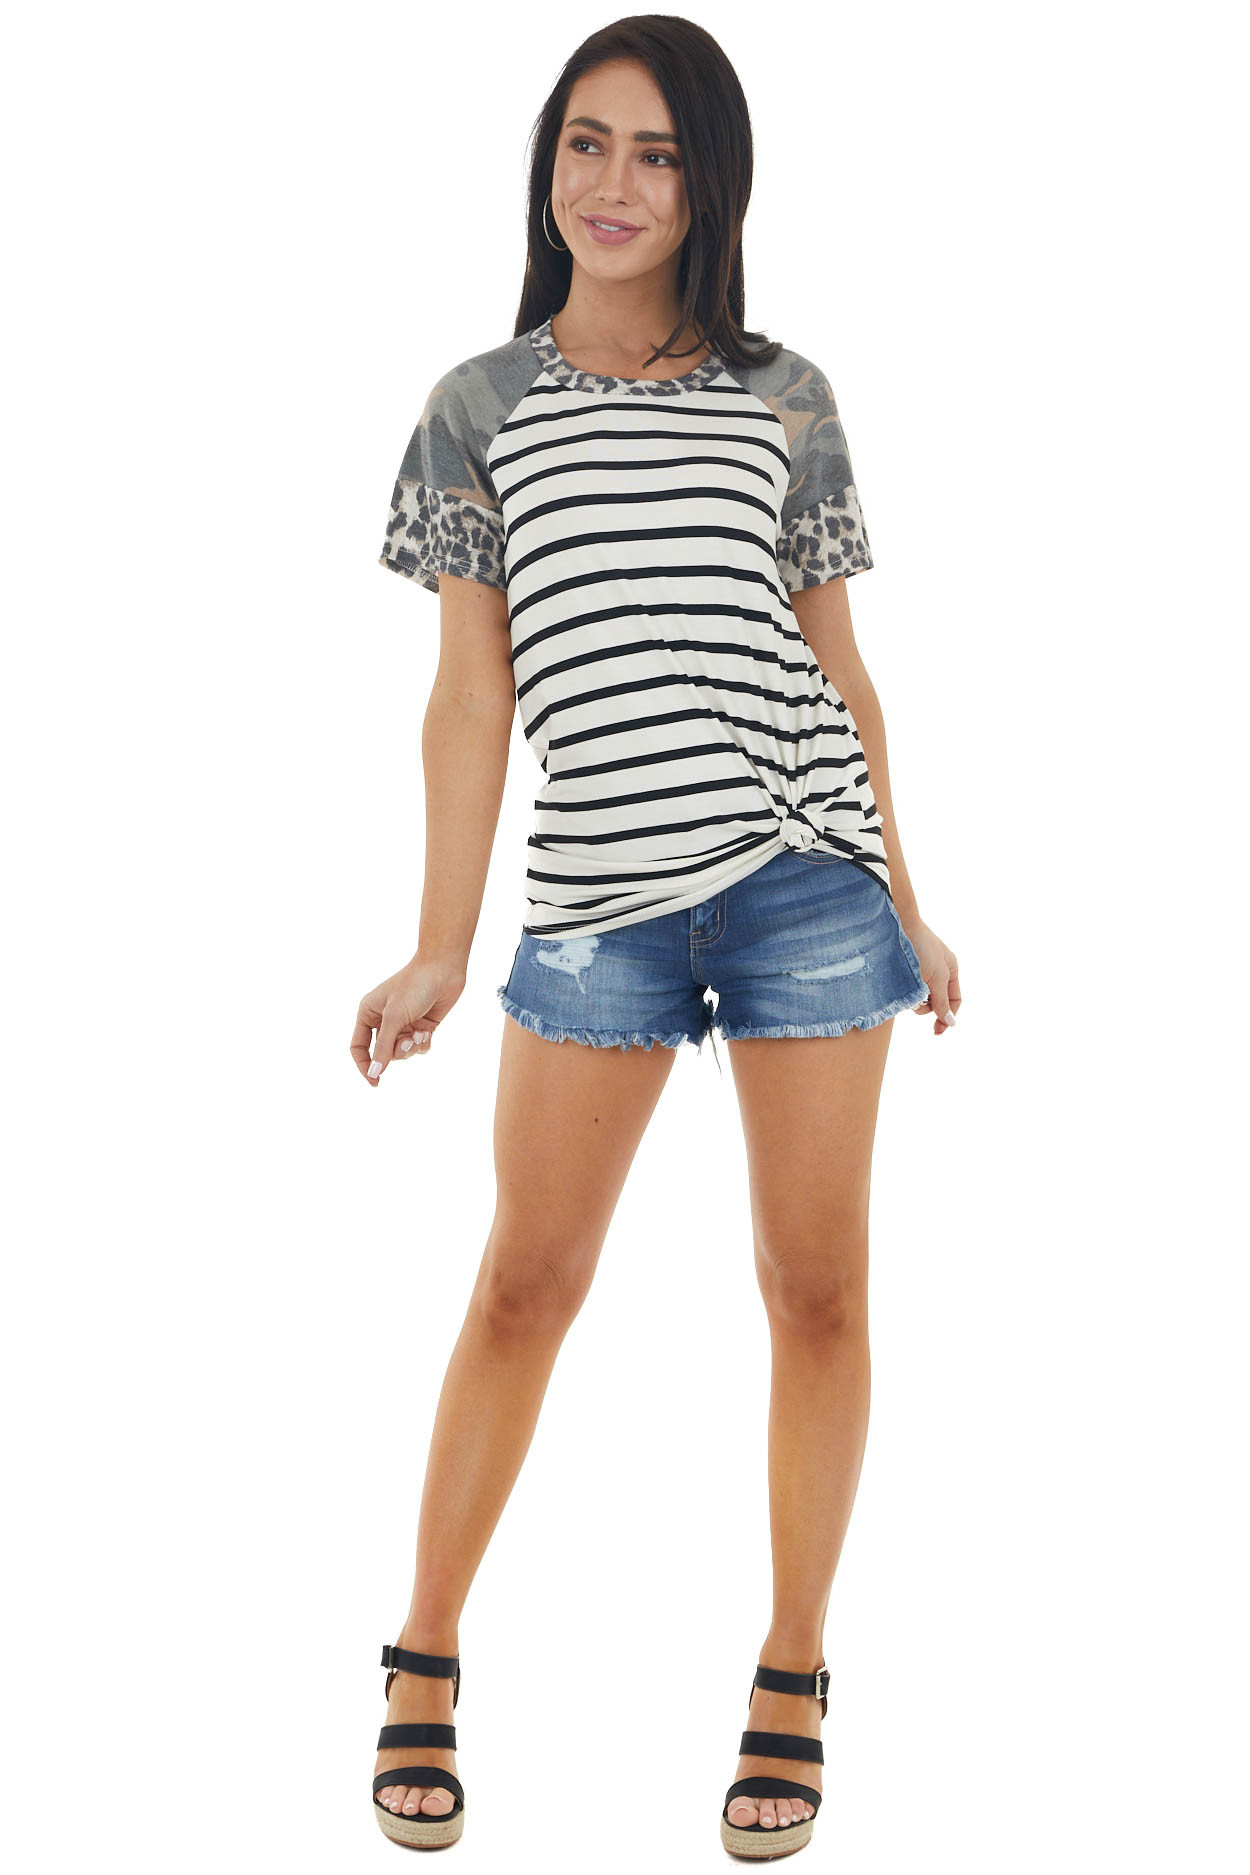 Vanilla and Black Striped Multiprint Short Sleeve Knit Top